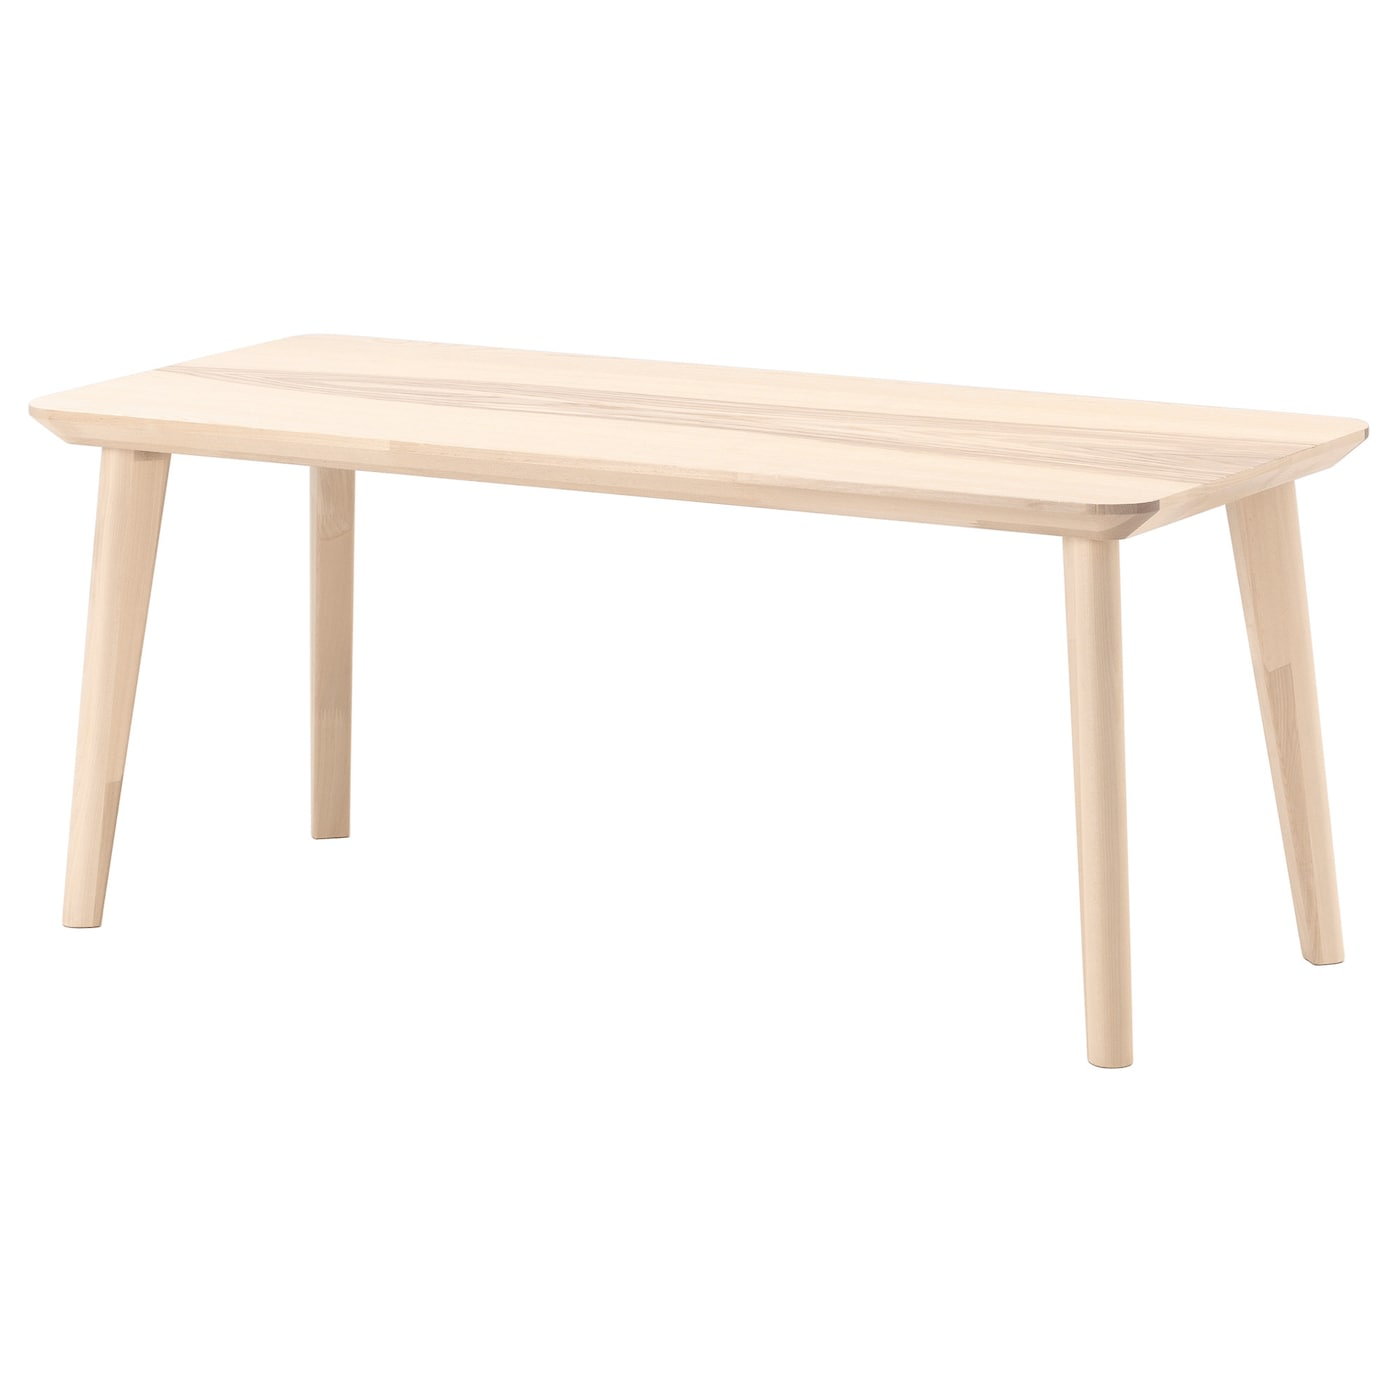 Lisabo coffee table ash veneer 118x50 cm ikea - Table basse modulable ikea ...